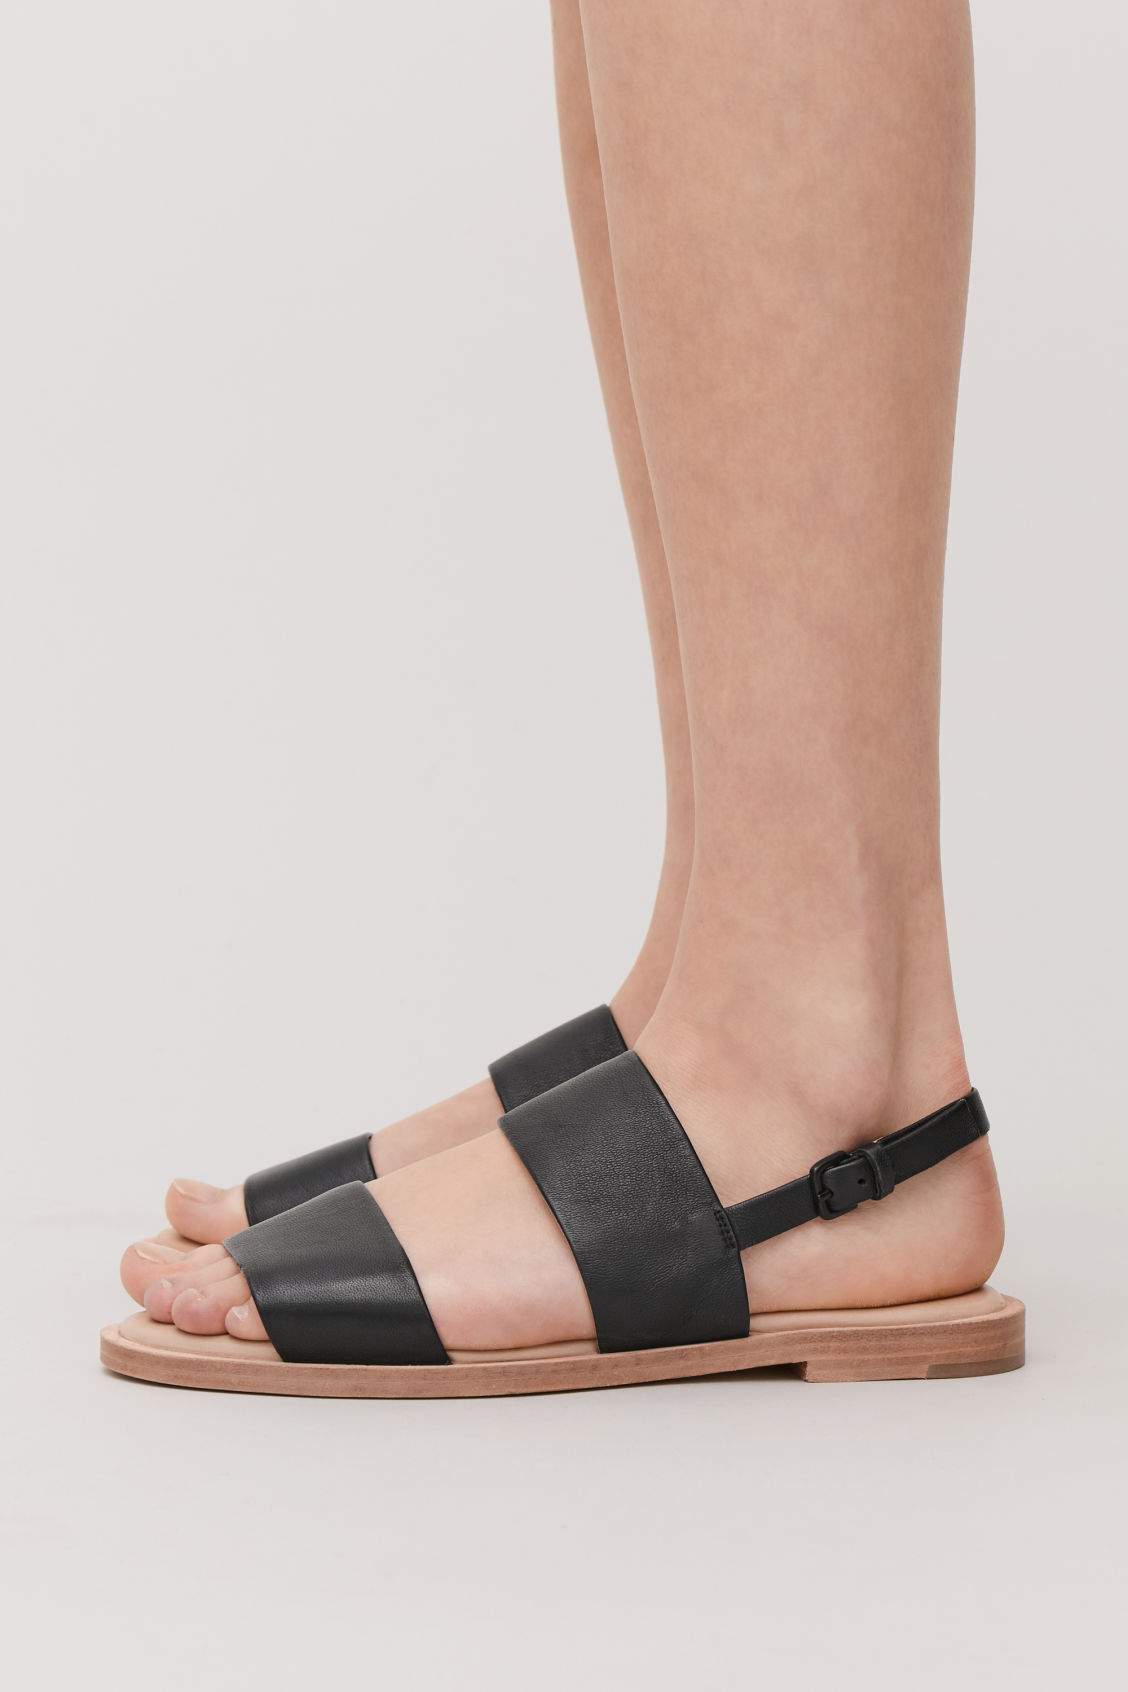 Detailed image of Cos leather strap sandals  in black